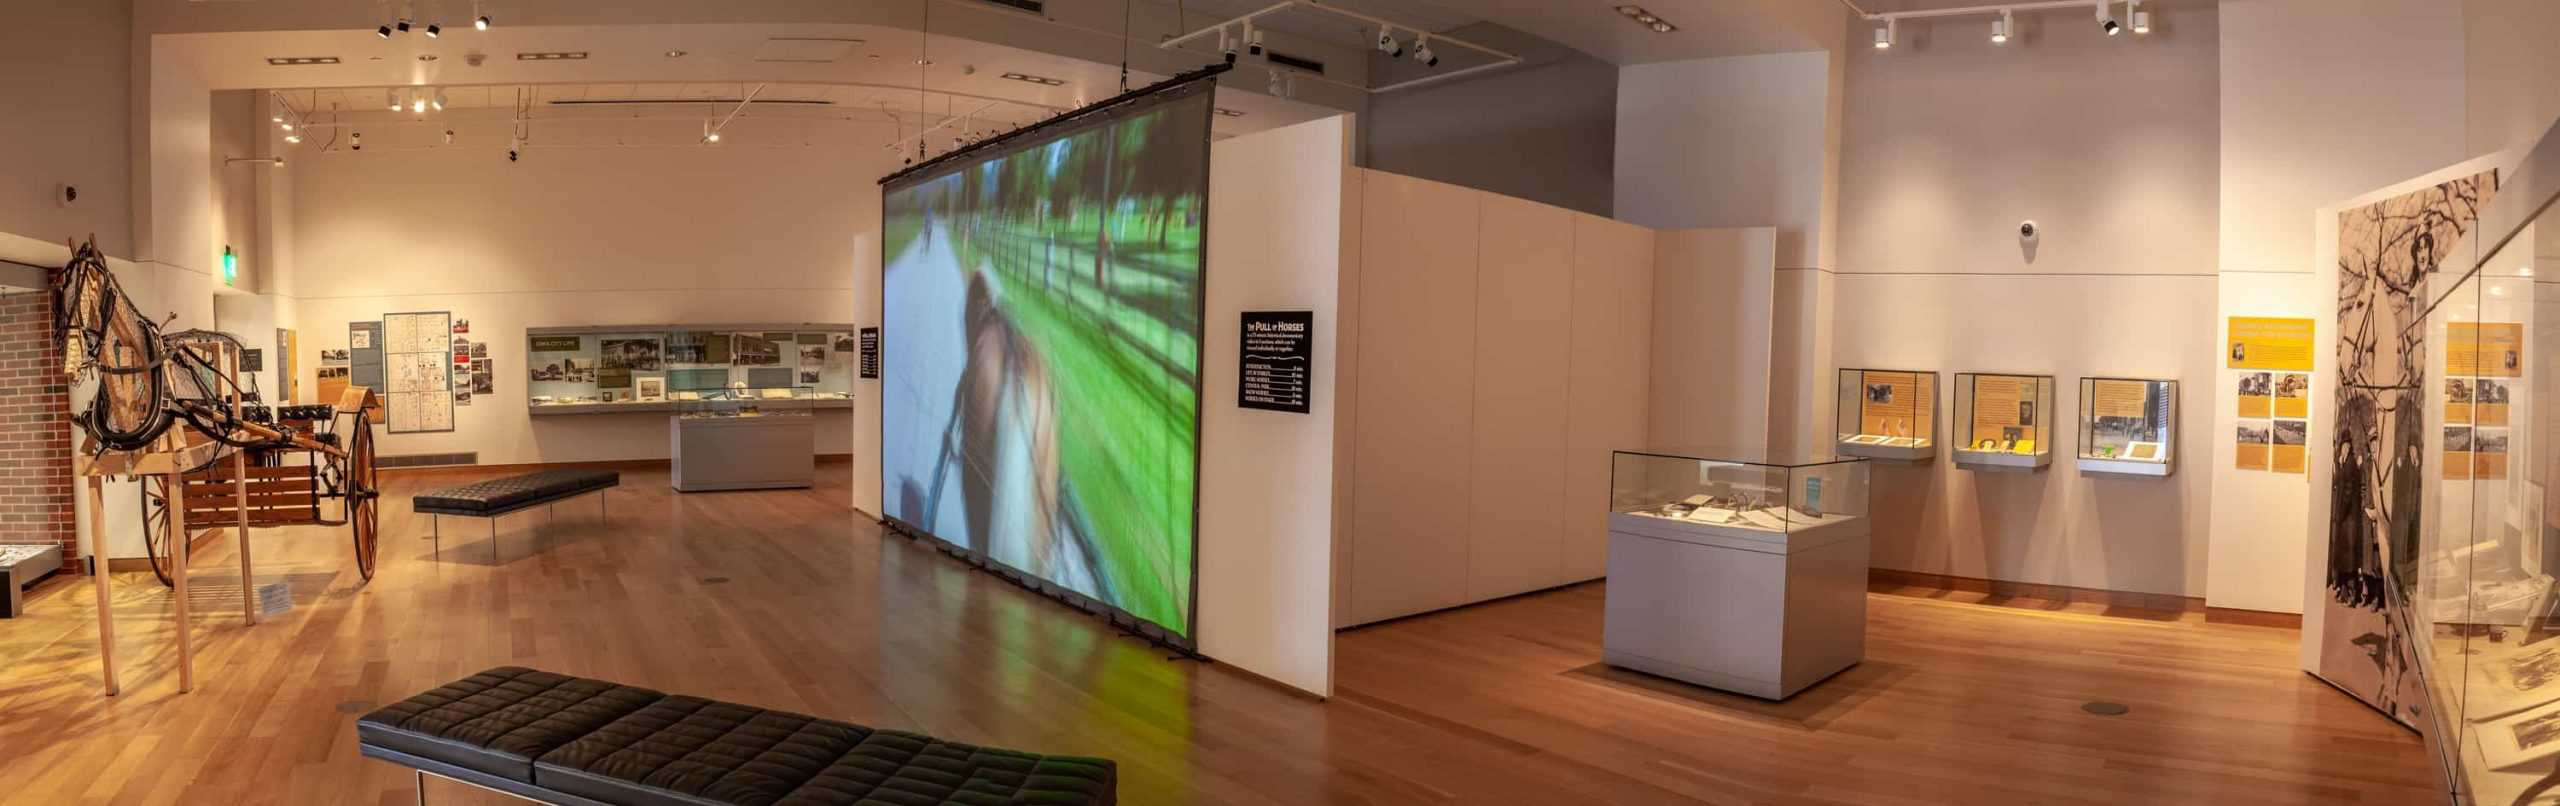 The photo is a panoramic view of the Main Library Gallery. It shows the locations of all cases, which are at the perimeter of the room and some placed in the middle of the gallery. A very large 16x9 screen is suspended from the ceiling and shows a film.